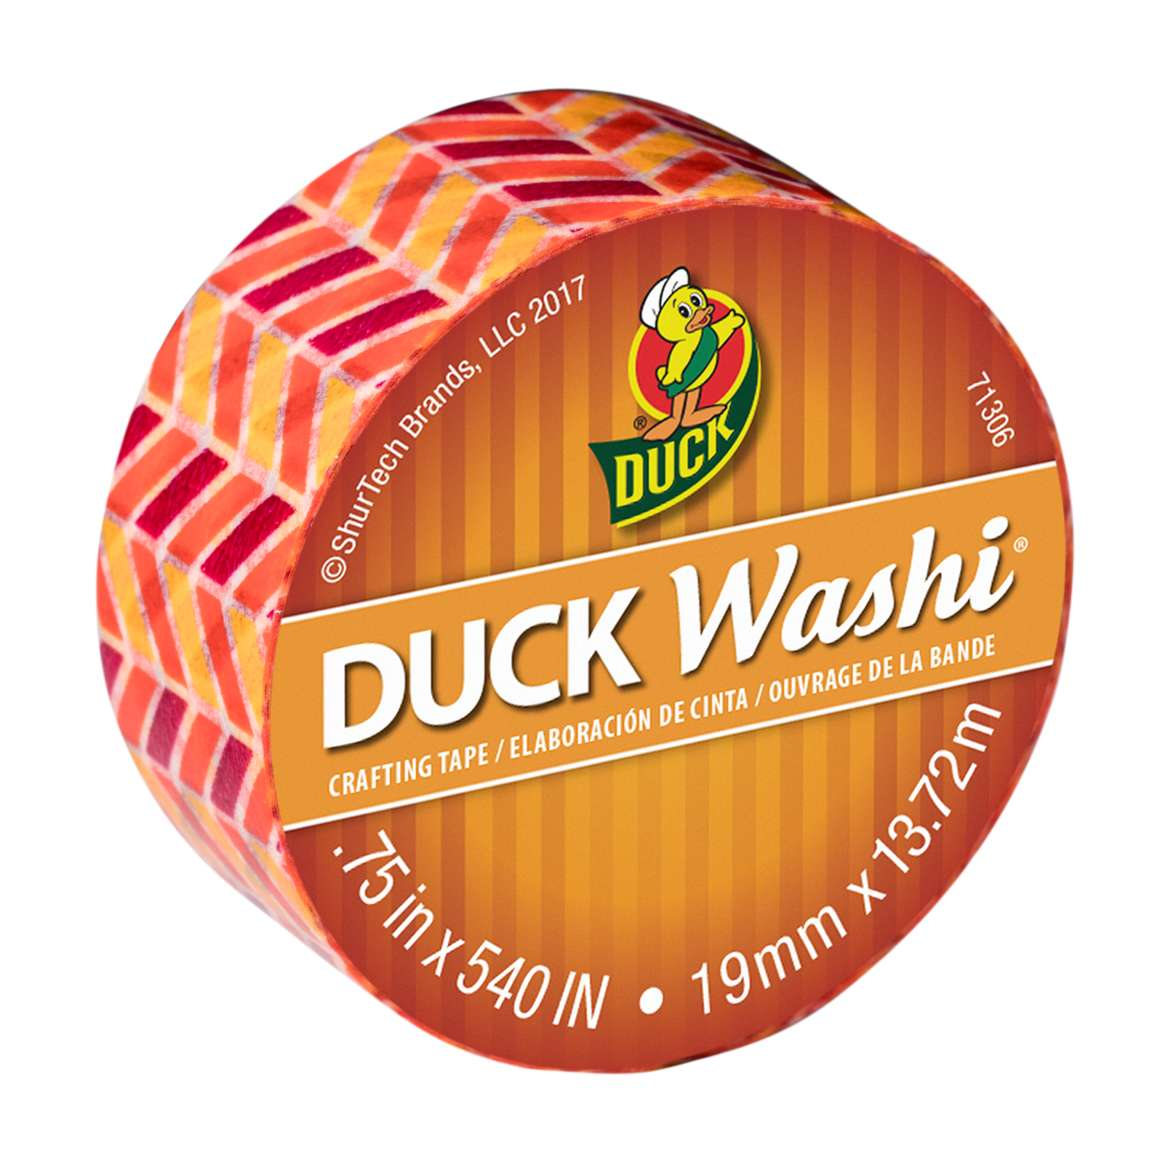 Duck Washi® Crafting Tape Image